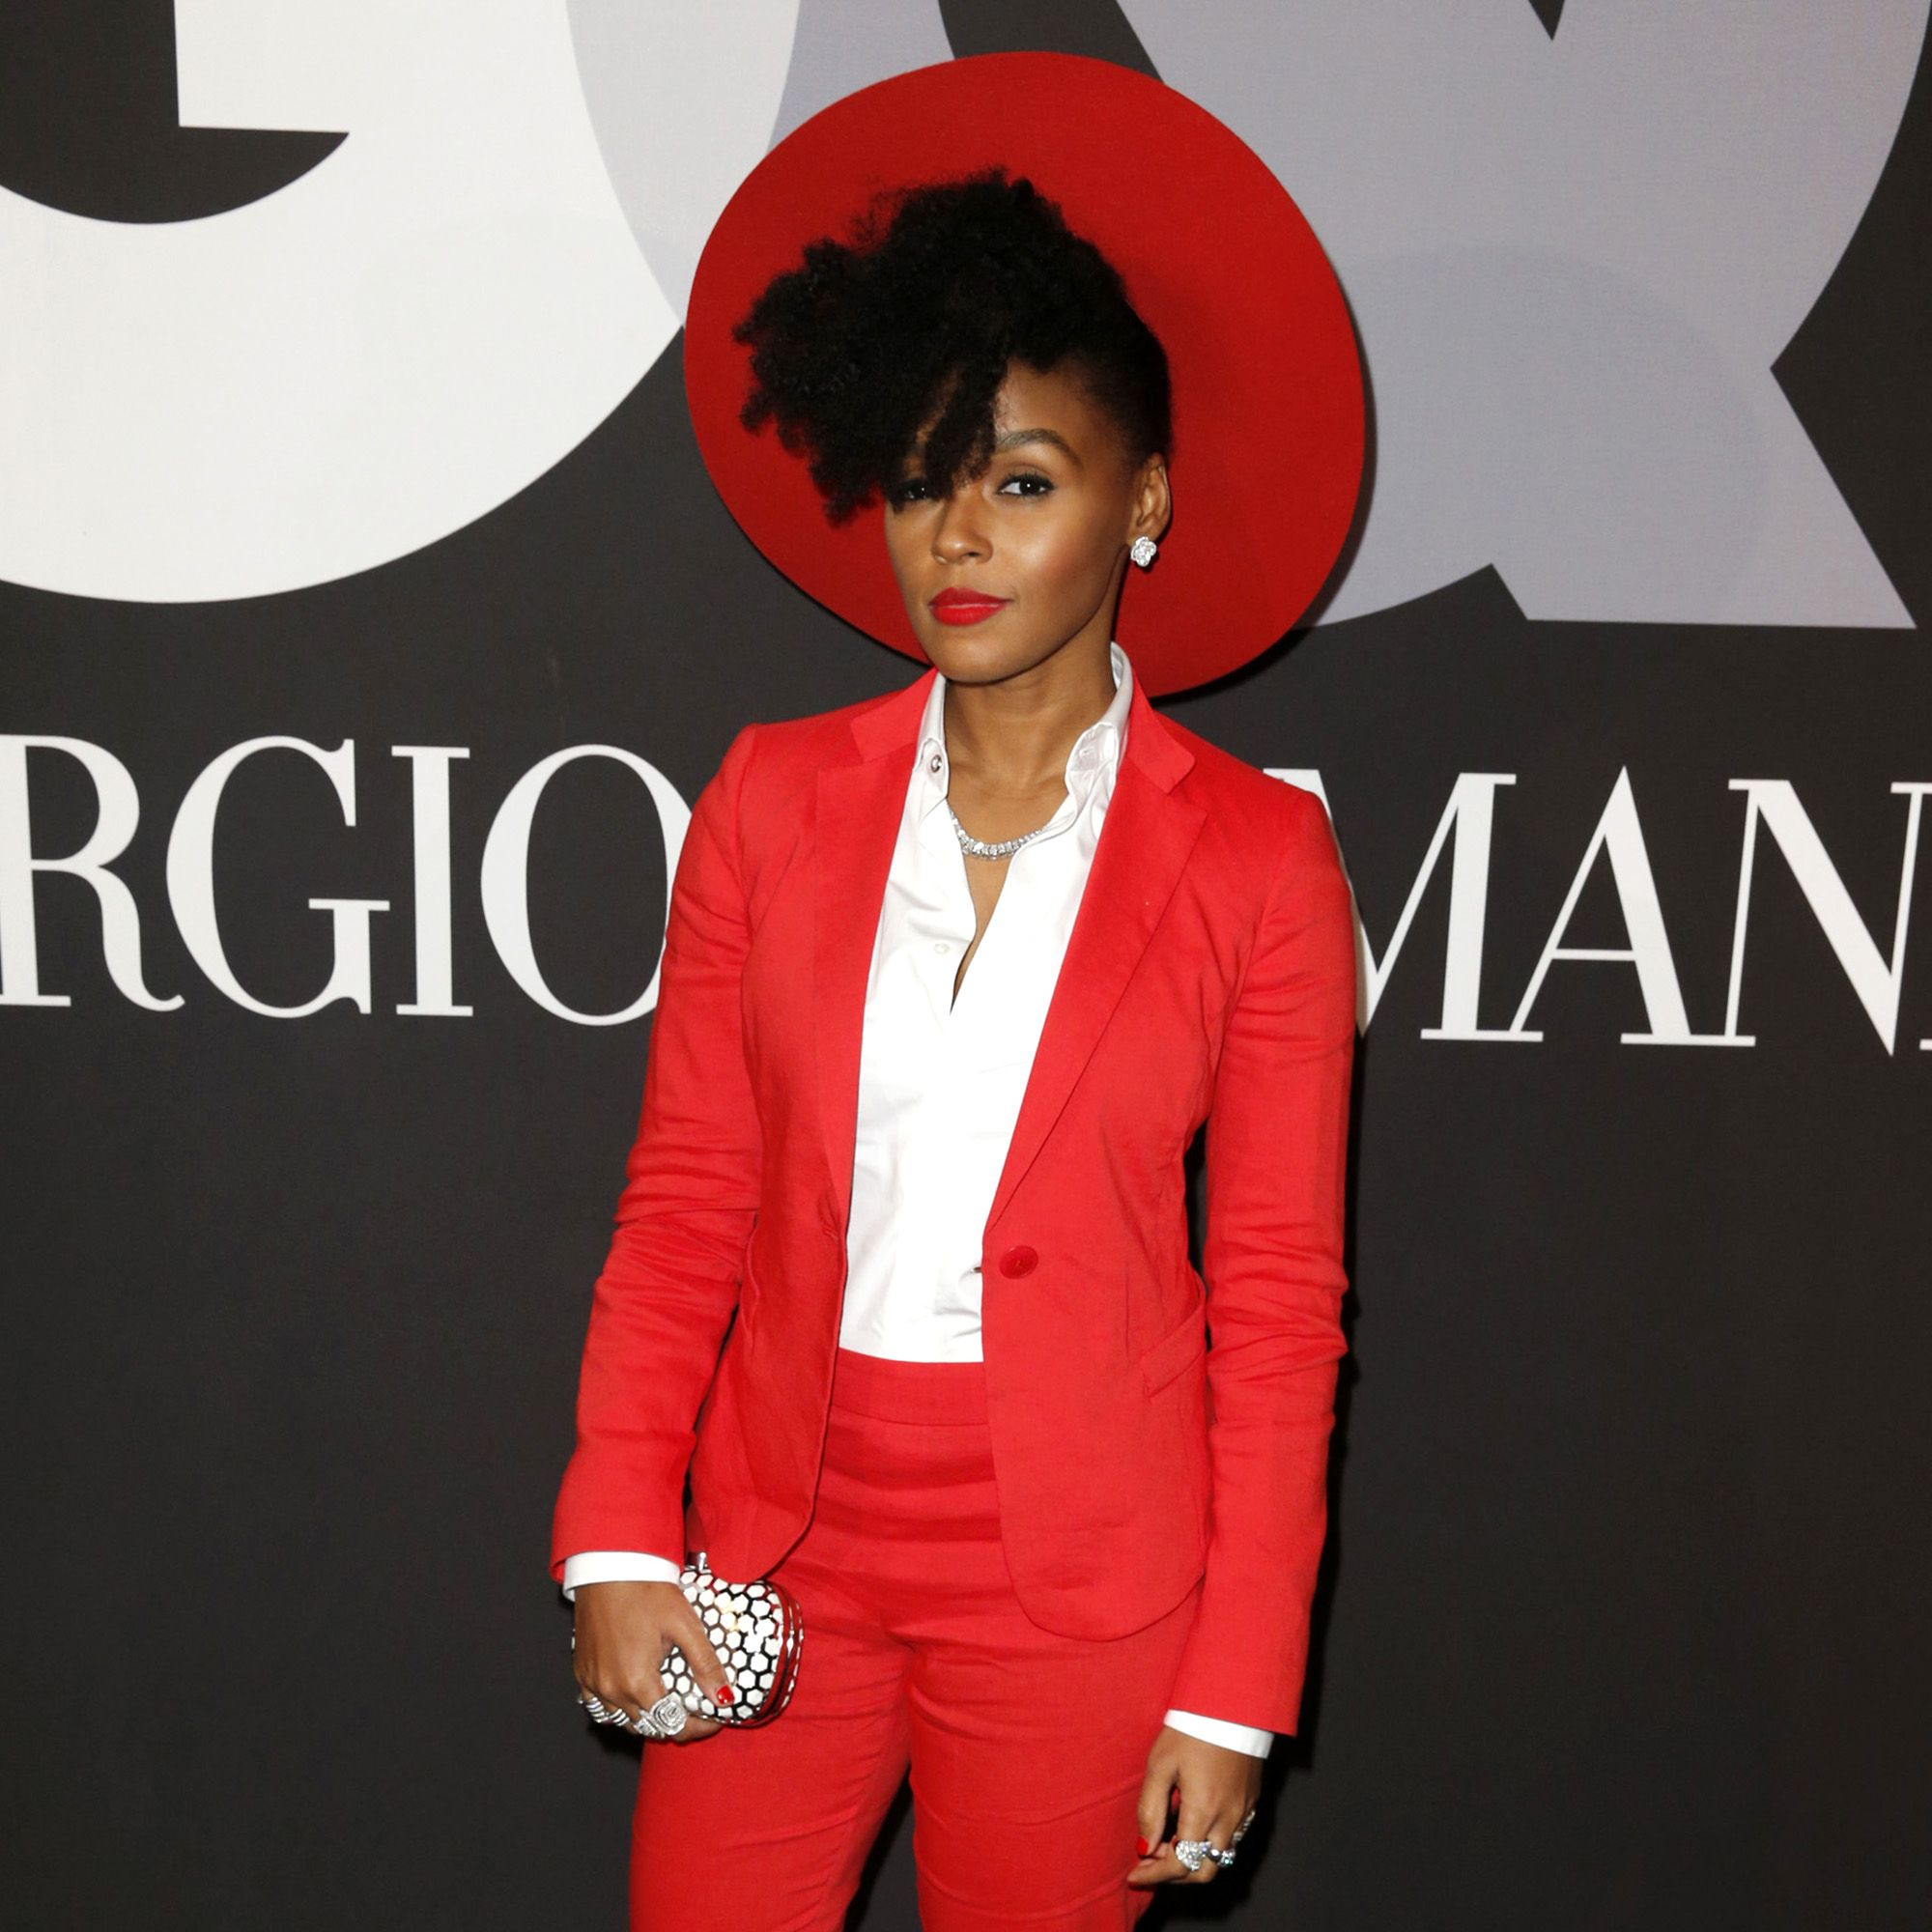 HOLLYWOOD, CA - FEBRUARY 08:  Recording artist Janelle Monae attends GQ and Giorgio Armani Grammys After Party at Hollywood Athletic Club on February 8, 2015 in Hollywood, California.  (Photo by Joe Scarnici/Getty Images for GQ)